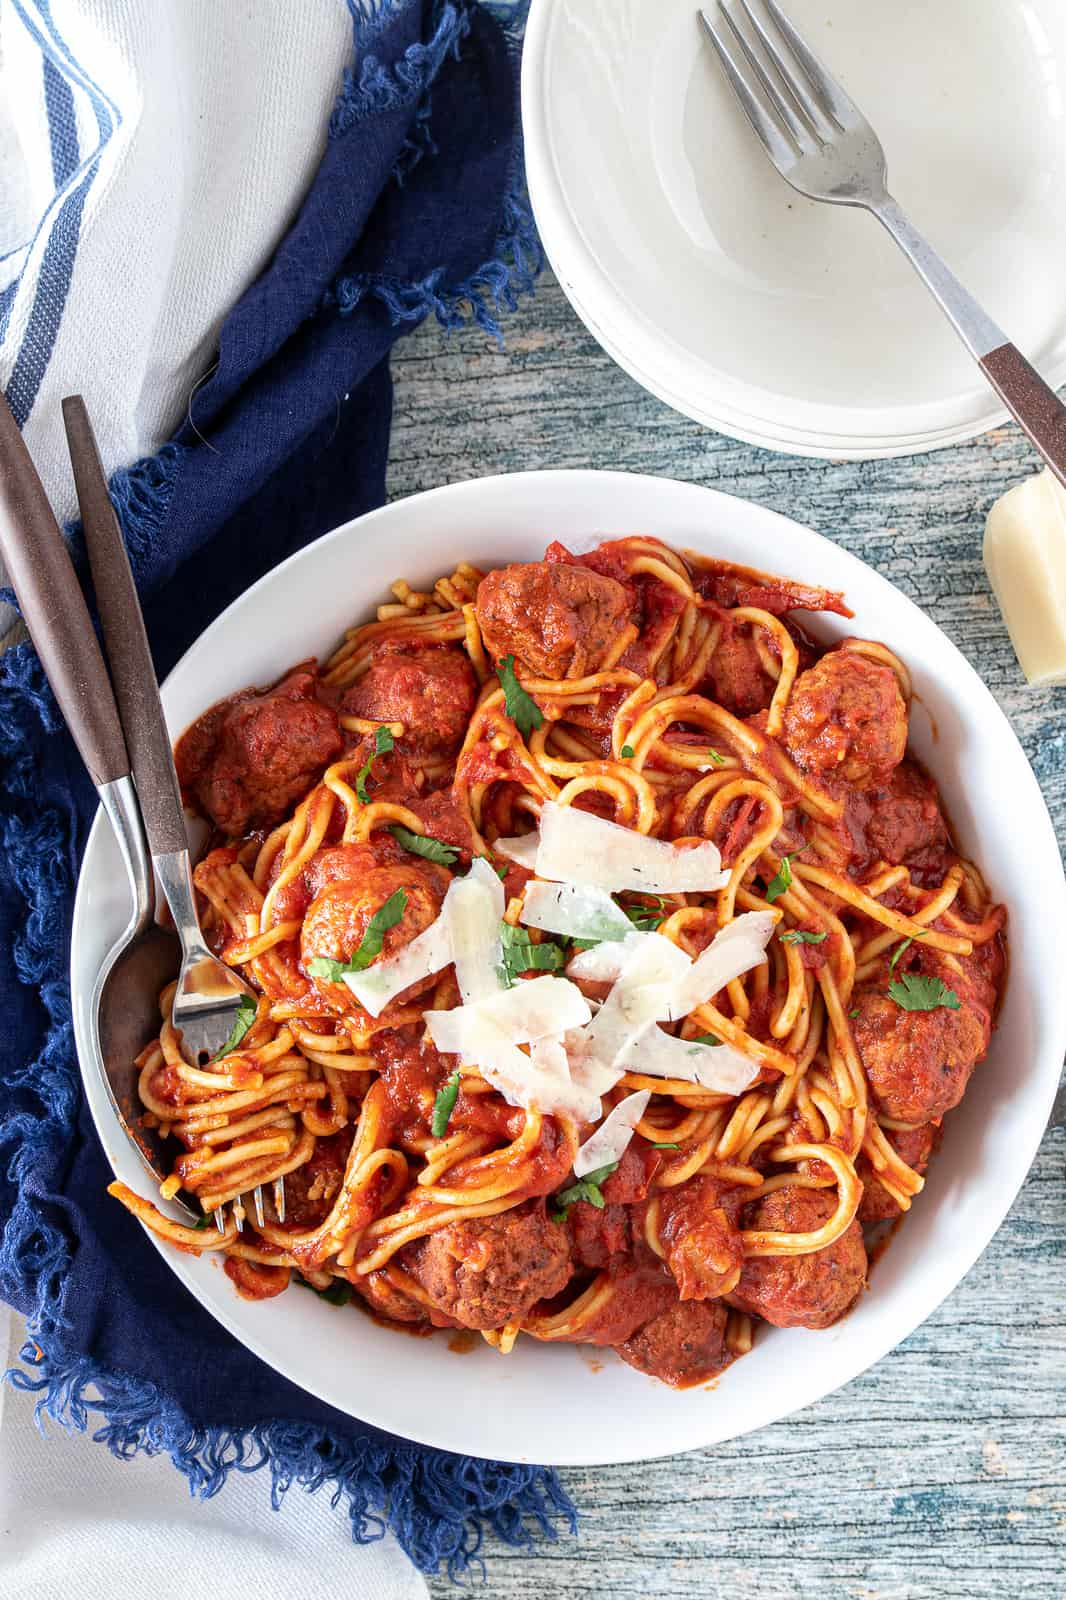 spaghetti and meatballs in a bowl with shredded parmesan on top